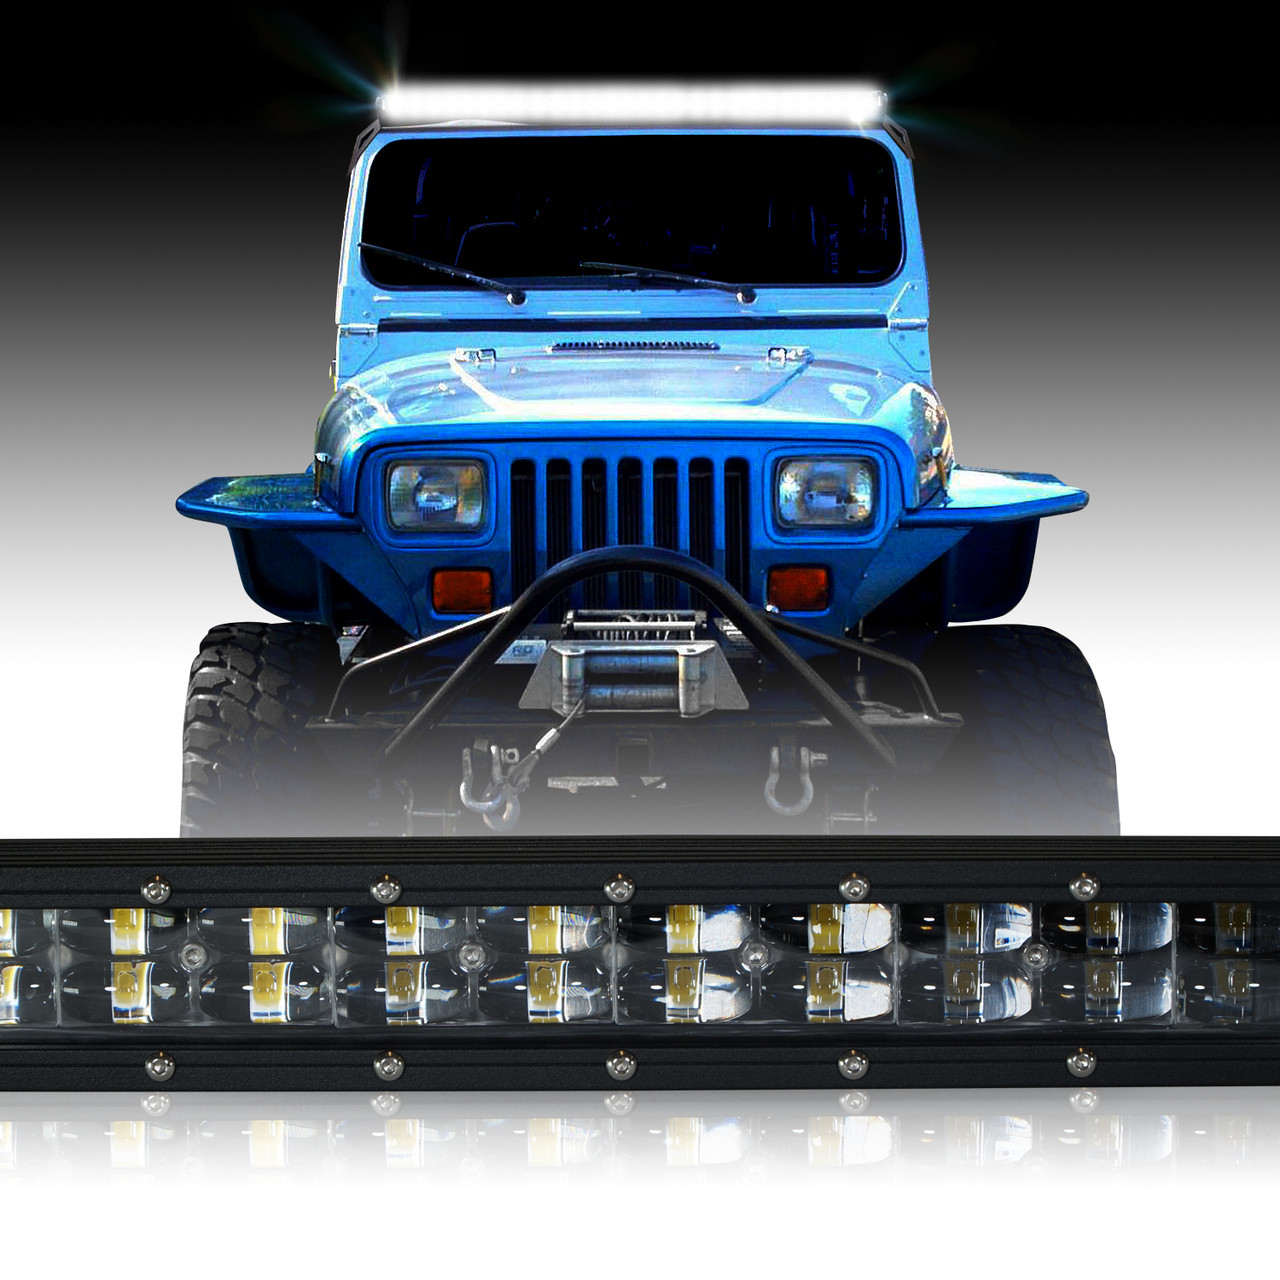 led light bar 288w 50 inches bracket wiring harness kit for wrangler jeep cj7 wiring harness led light bar 288w 50 inches bracket wiring harness kit for wrangler yj 1987 1995